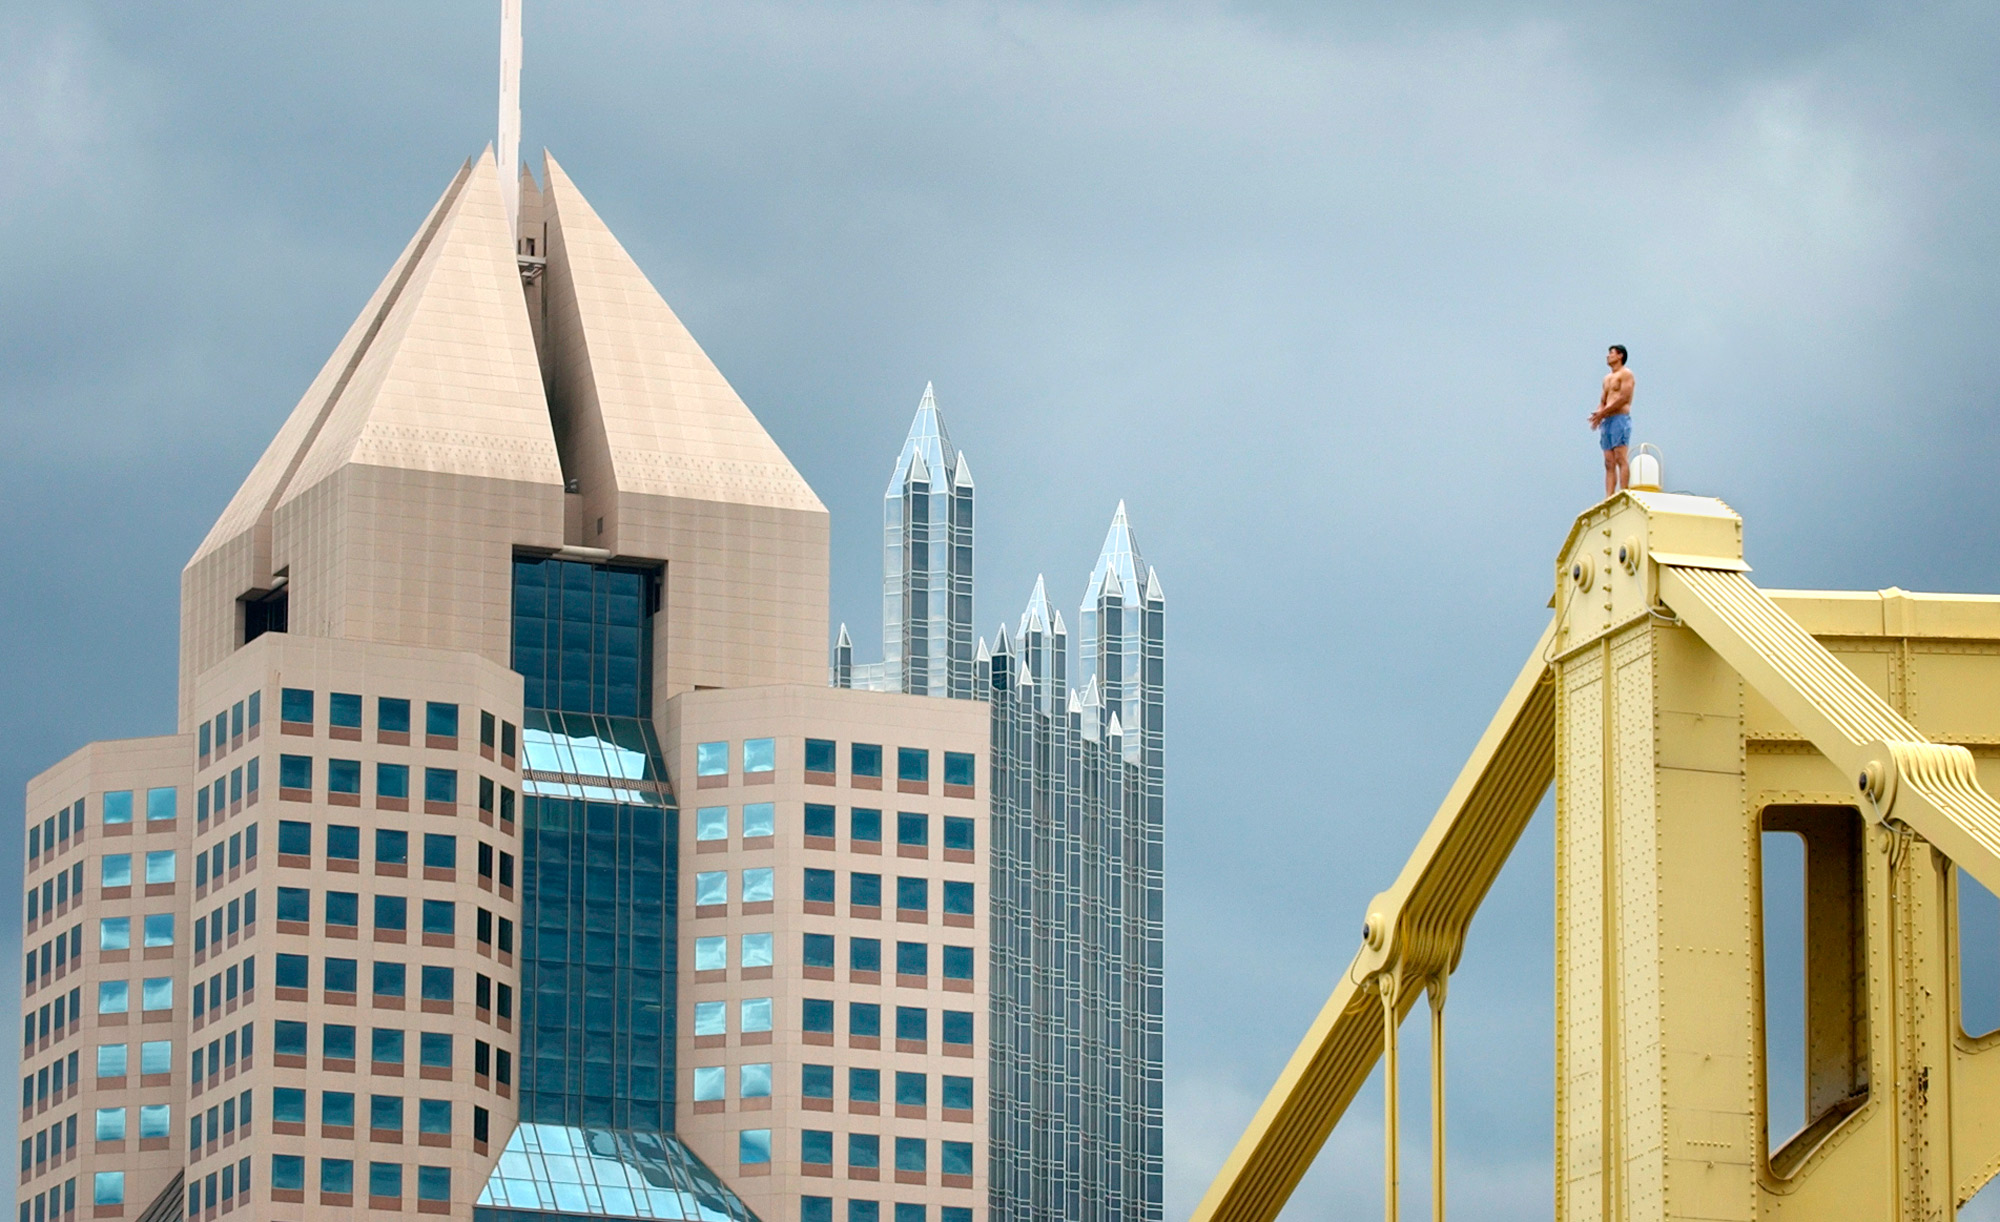 A man stands atop Pittsburgh's Roberto Clemente Bridge during rush hour. Police talked him down safely.